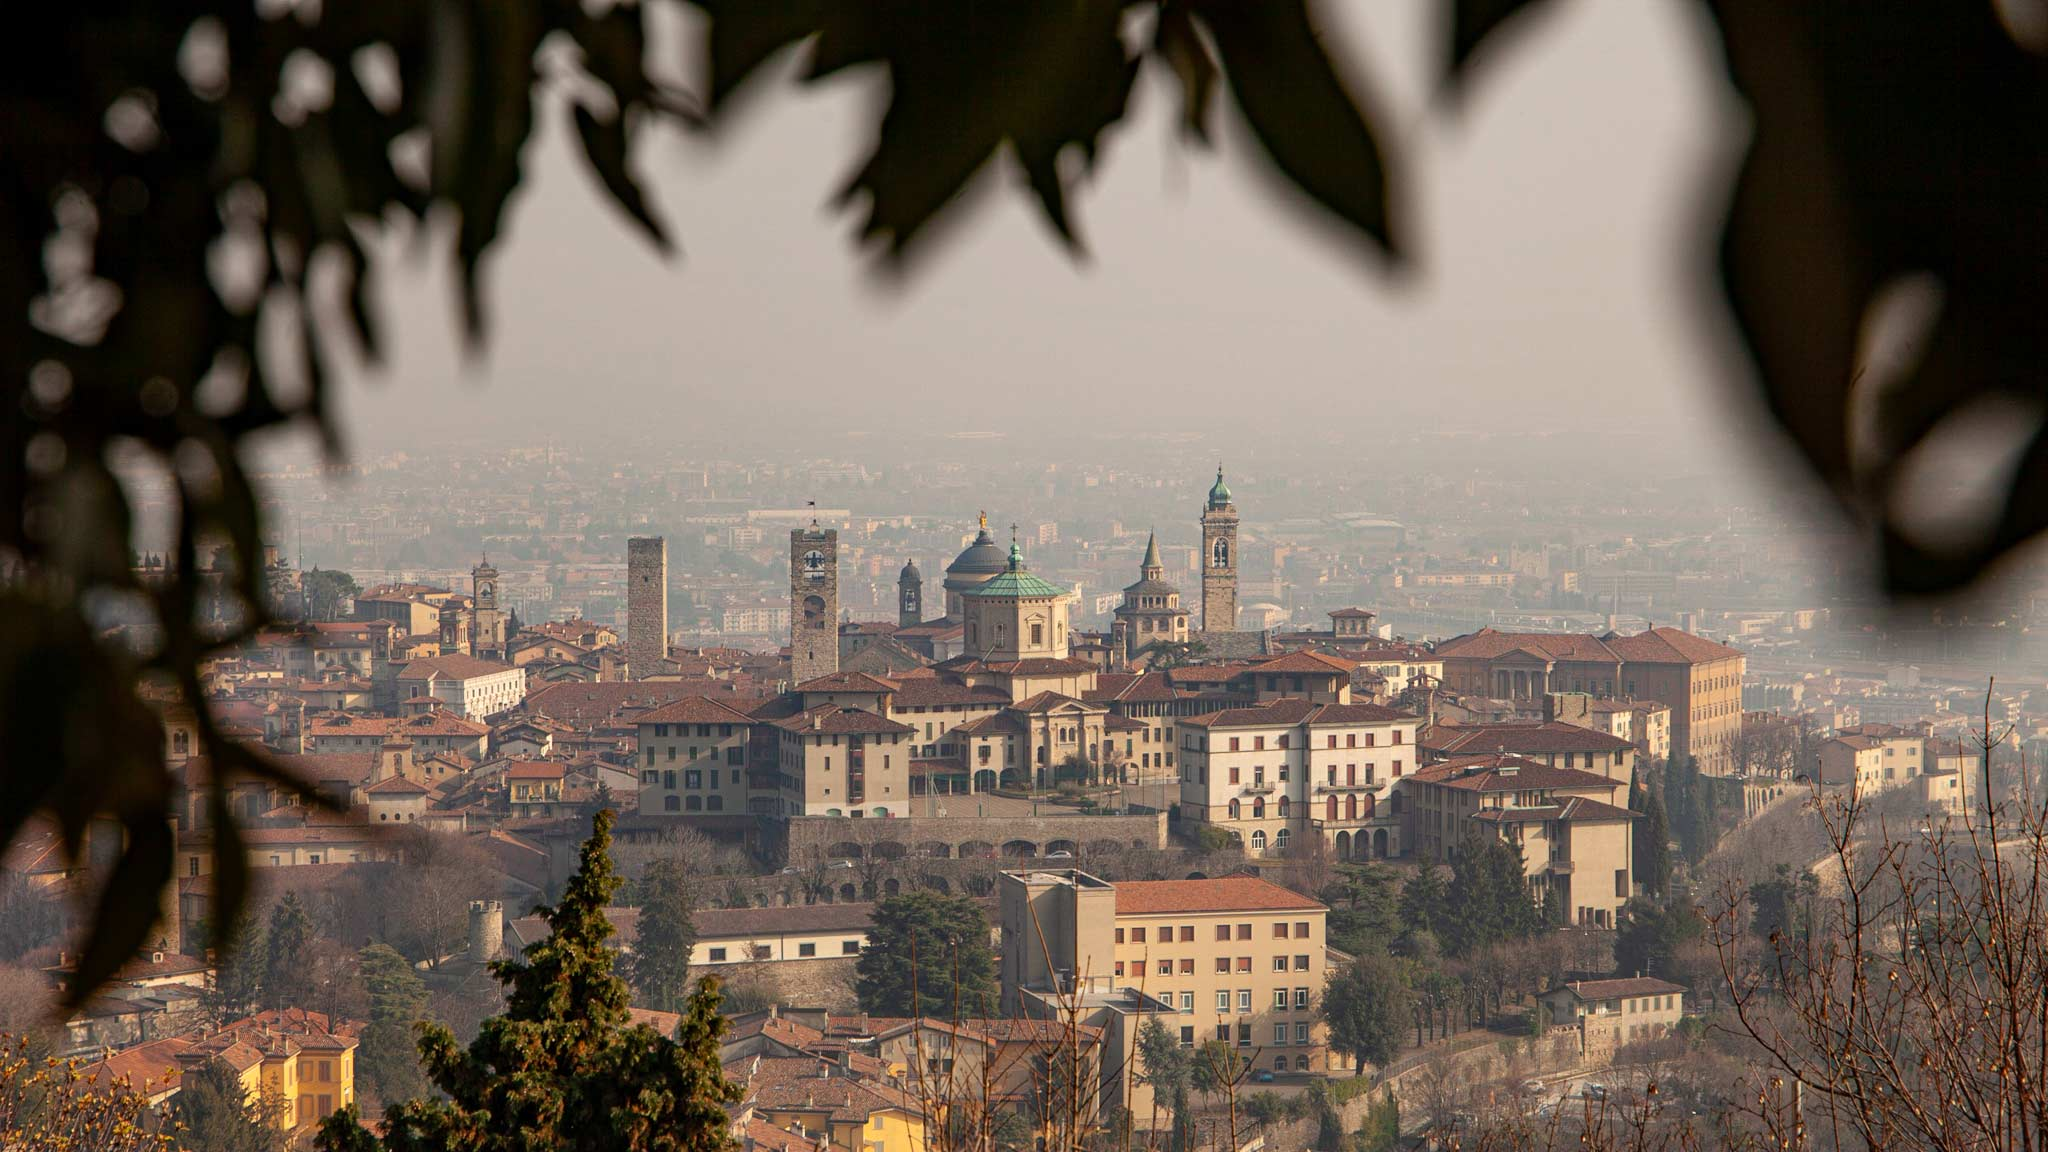 The higher part of Bergamo as seen from afar at sunset, framed by a tree